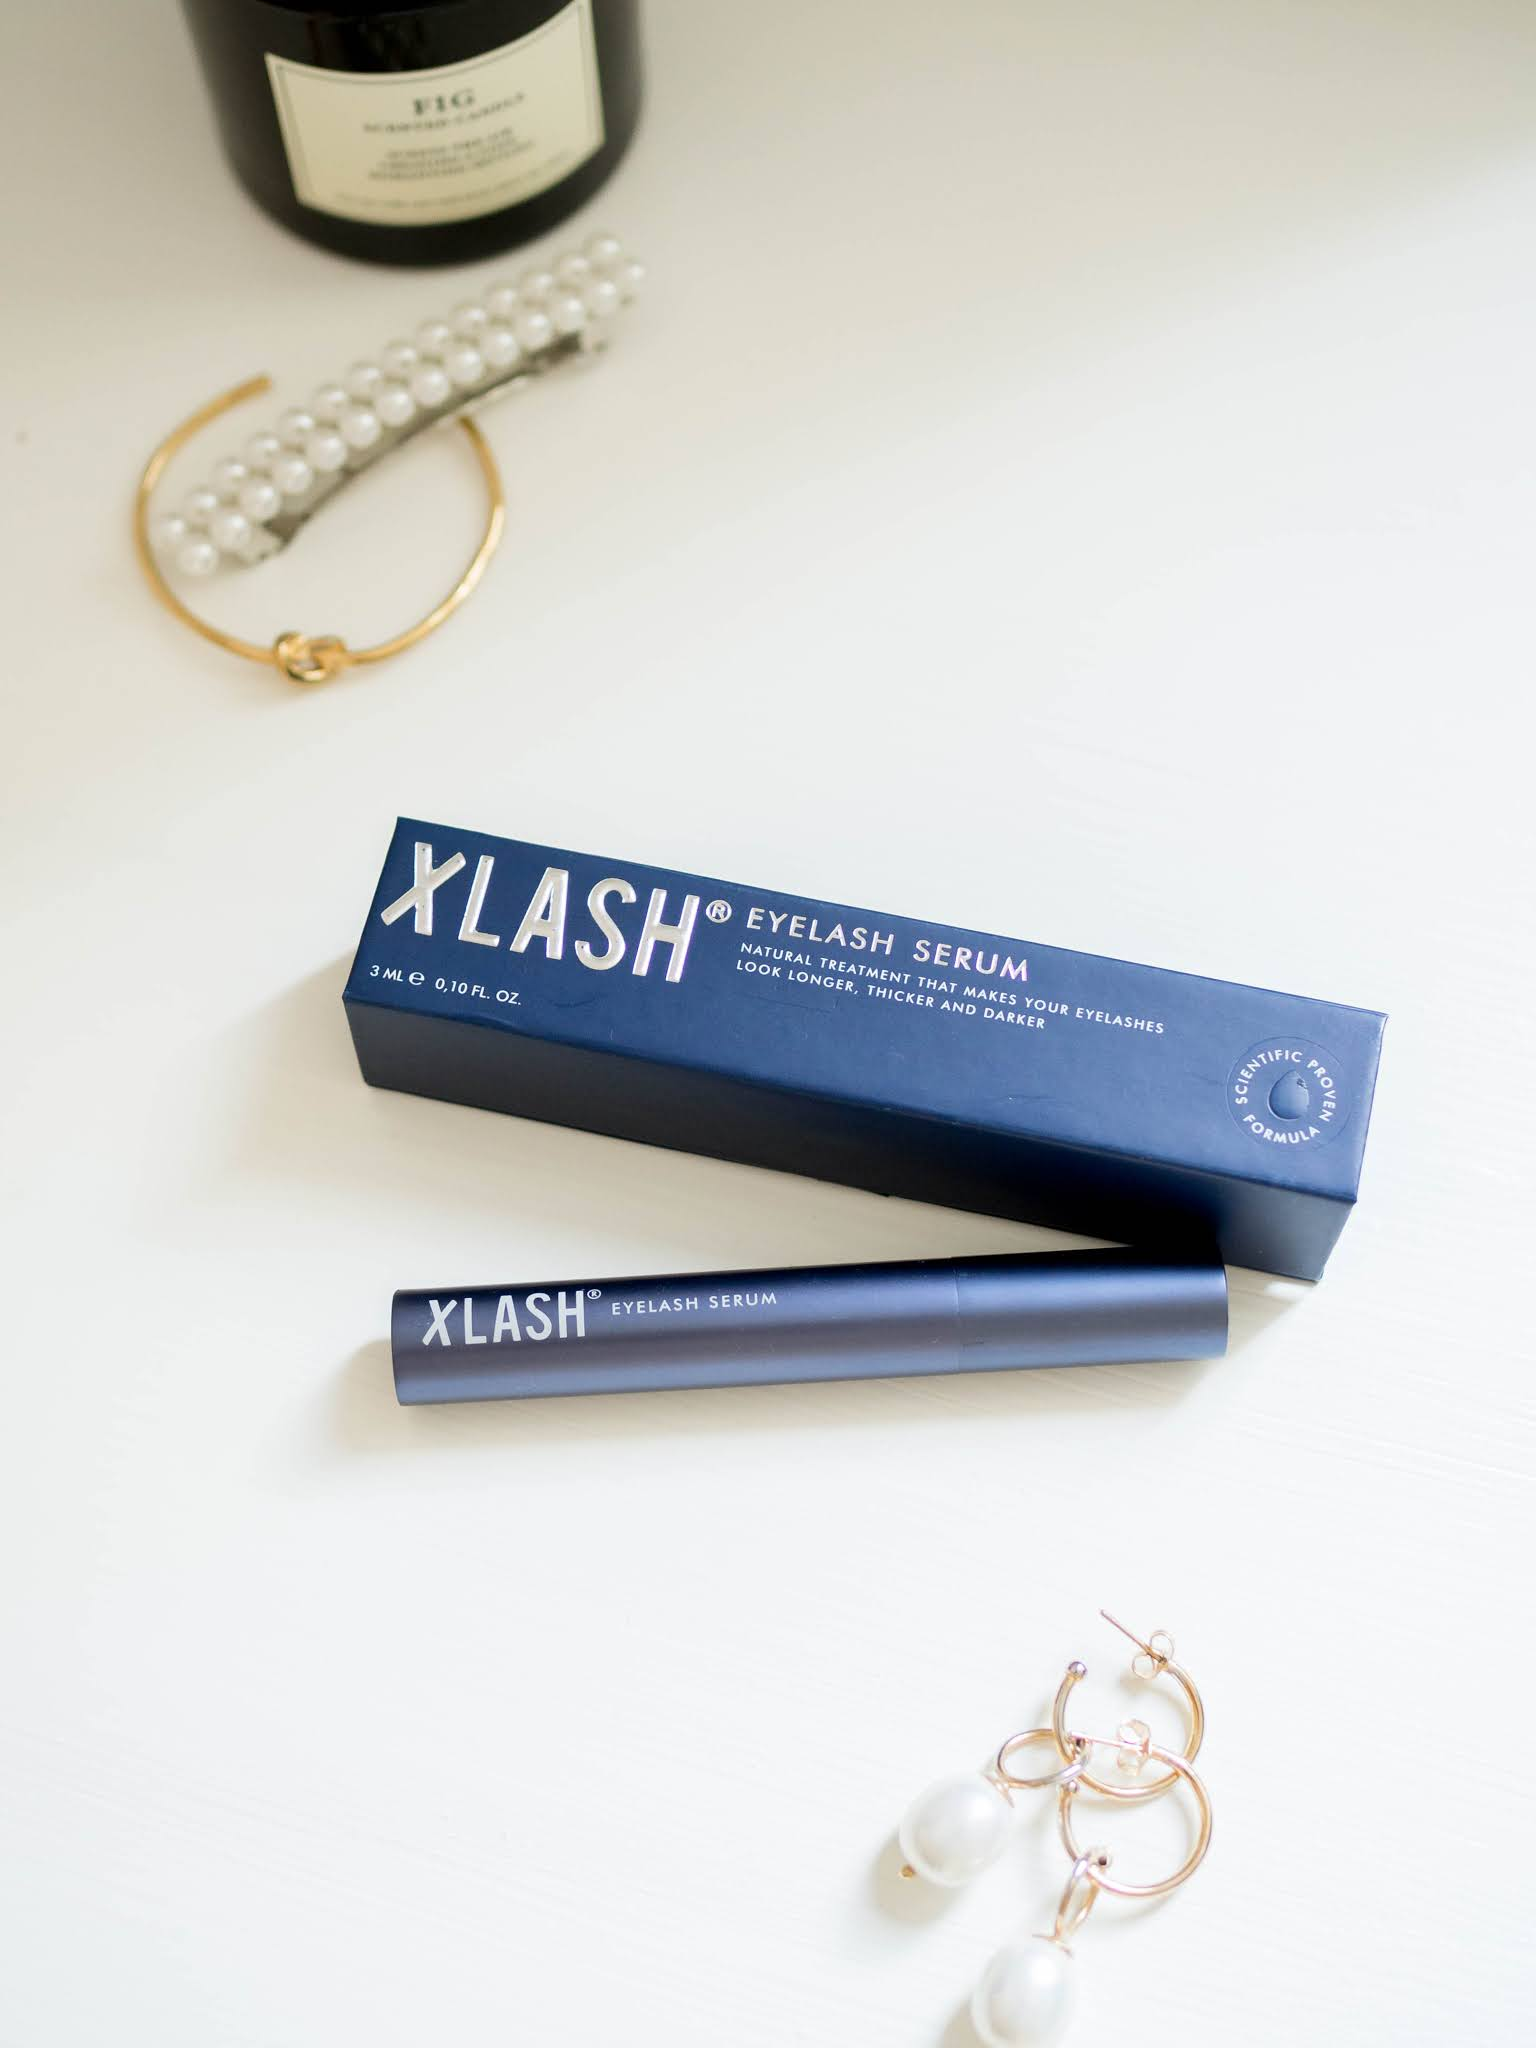 Xlash ripsiseeurmi // Xlash eyelash serum